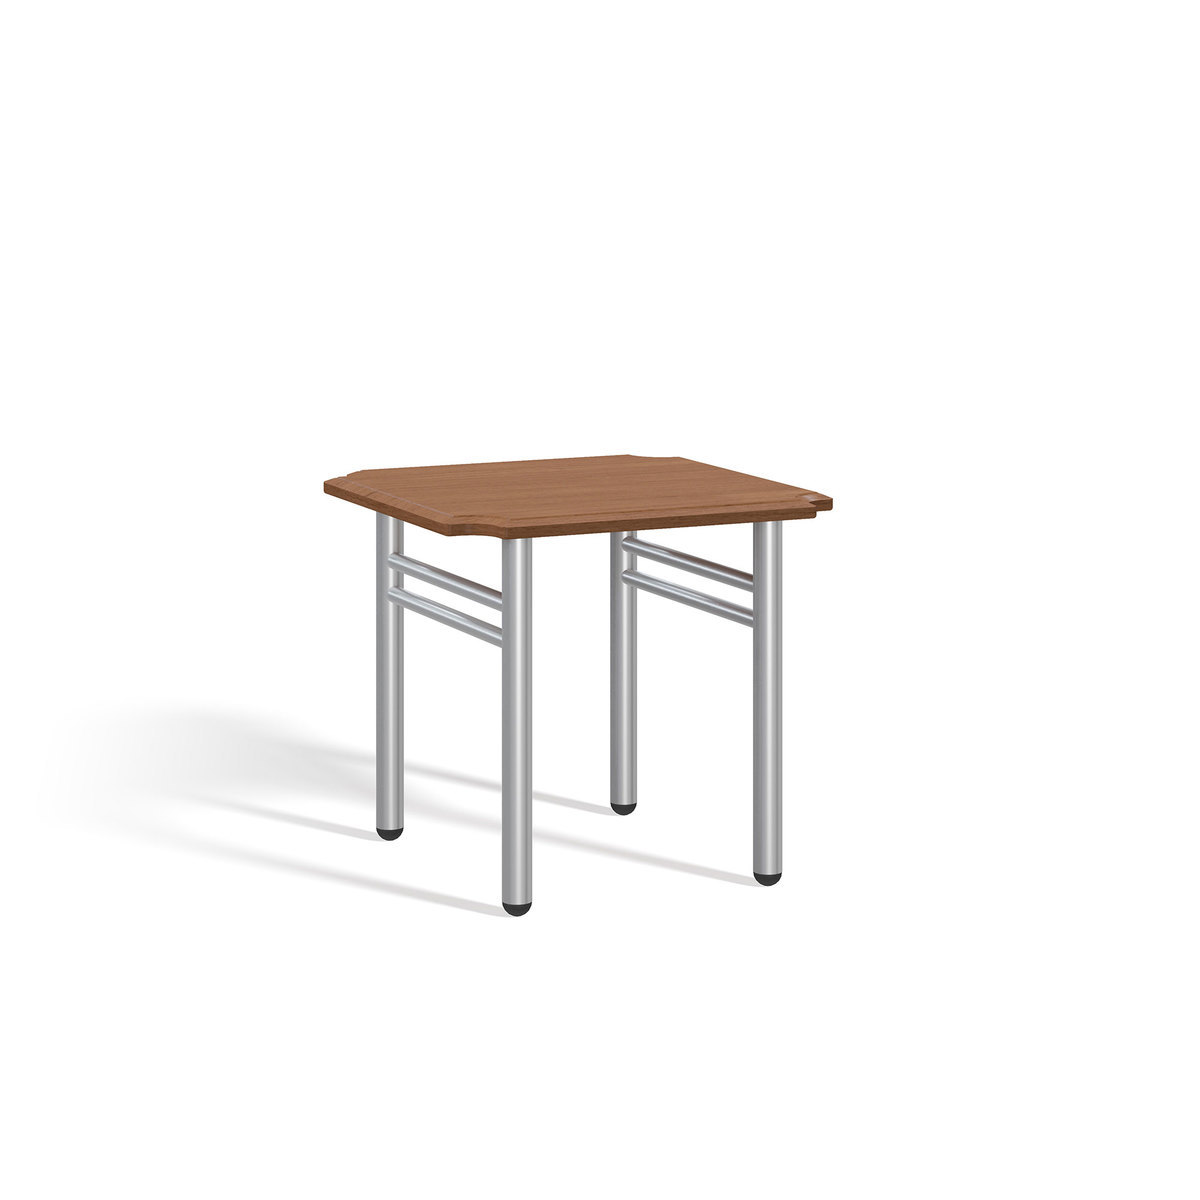 Square table Photo